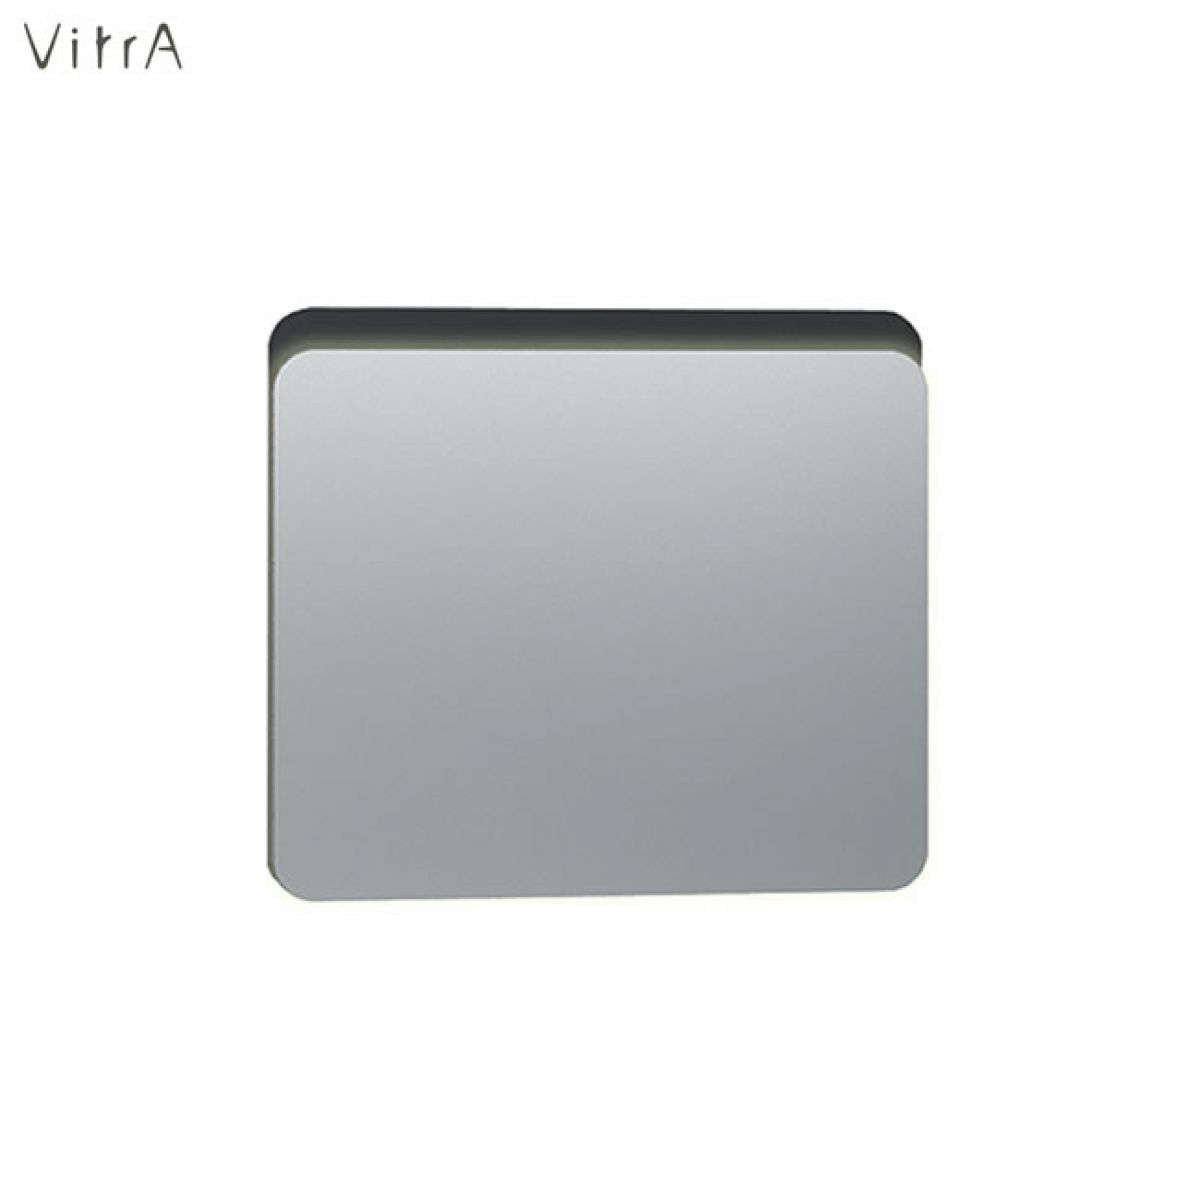 Vitra Nest LED Illuminated Bathroom Mirror